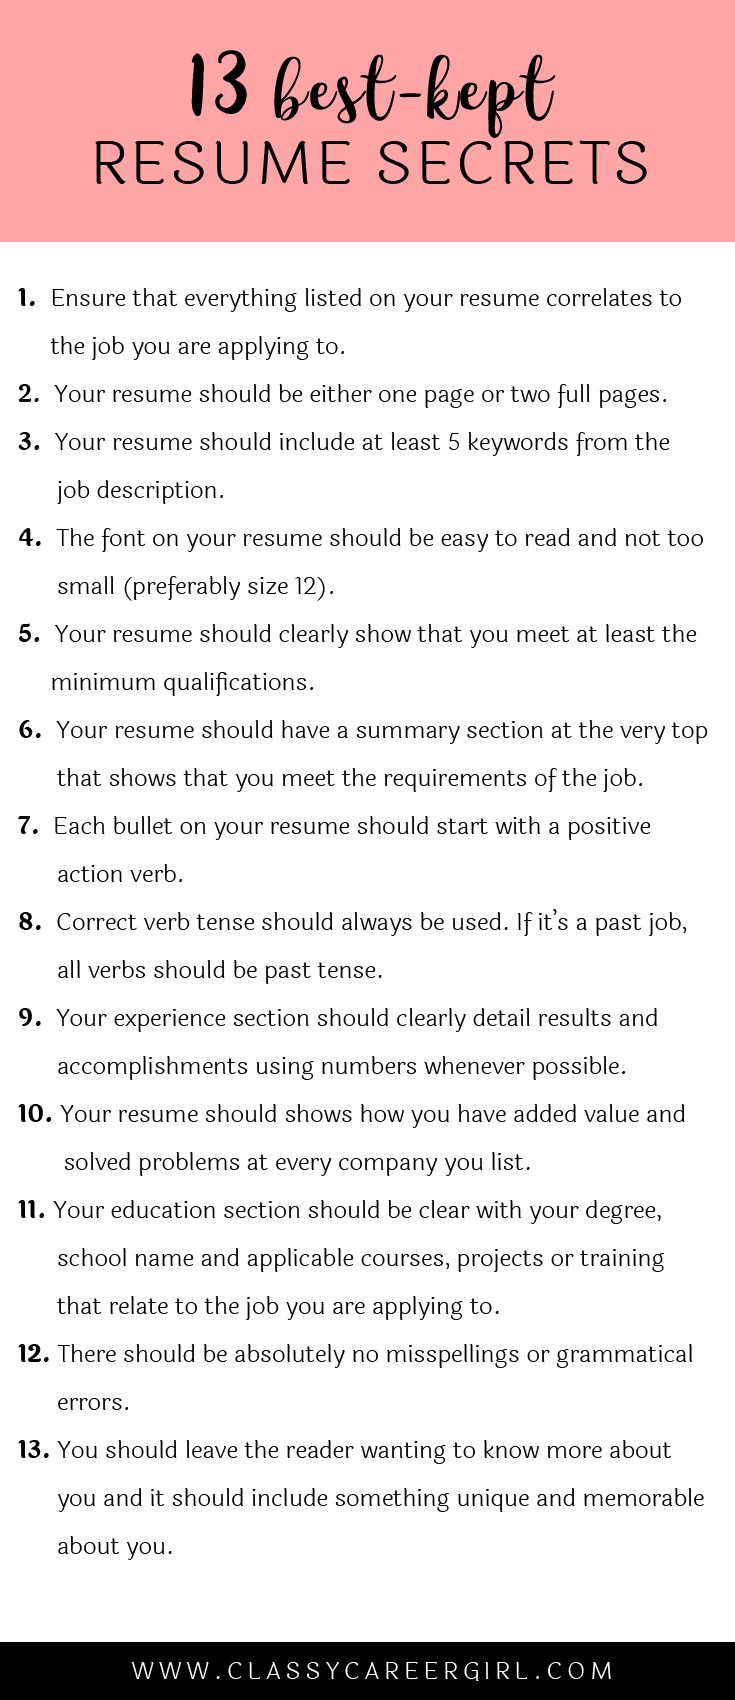 Opposenewapstandardsus  Inspiring  Ideas About Resume On Pinterest  Cv Format Resume Cv And  With Fetching Some Hiring Managers Will Toss Your Resume Out If You Dont Know These  With Archaic Interests To Put On A Resume Also Forklift Resume In Addition Resume For Work And Resume Template Microsoft Word Download As Well As Modern Resume Examples Additionally Sous Chef Resume From Pinterestcom With Opposenewapstandardsus  Fetching  Ideas About Resume On Pinterest  Cv Format Resume Cv And  With Archaic Some Hiring Managers Will Toss Your Resume Out If You Dont Know These  And Inspiring Interests To Put On A Resume Also Forklift Resume In Addition Resume For Work From Pinterestcom